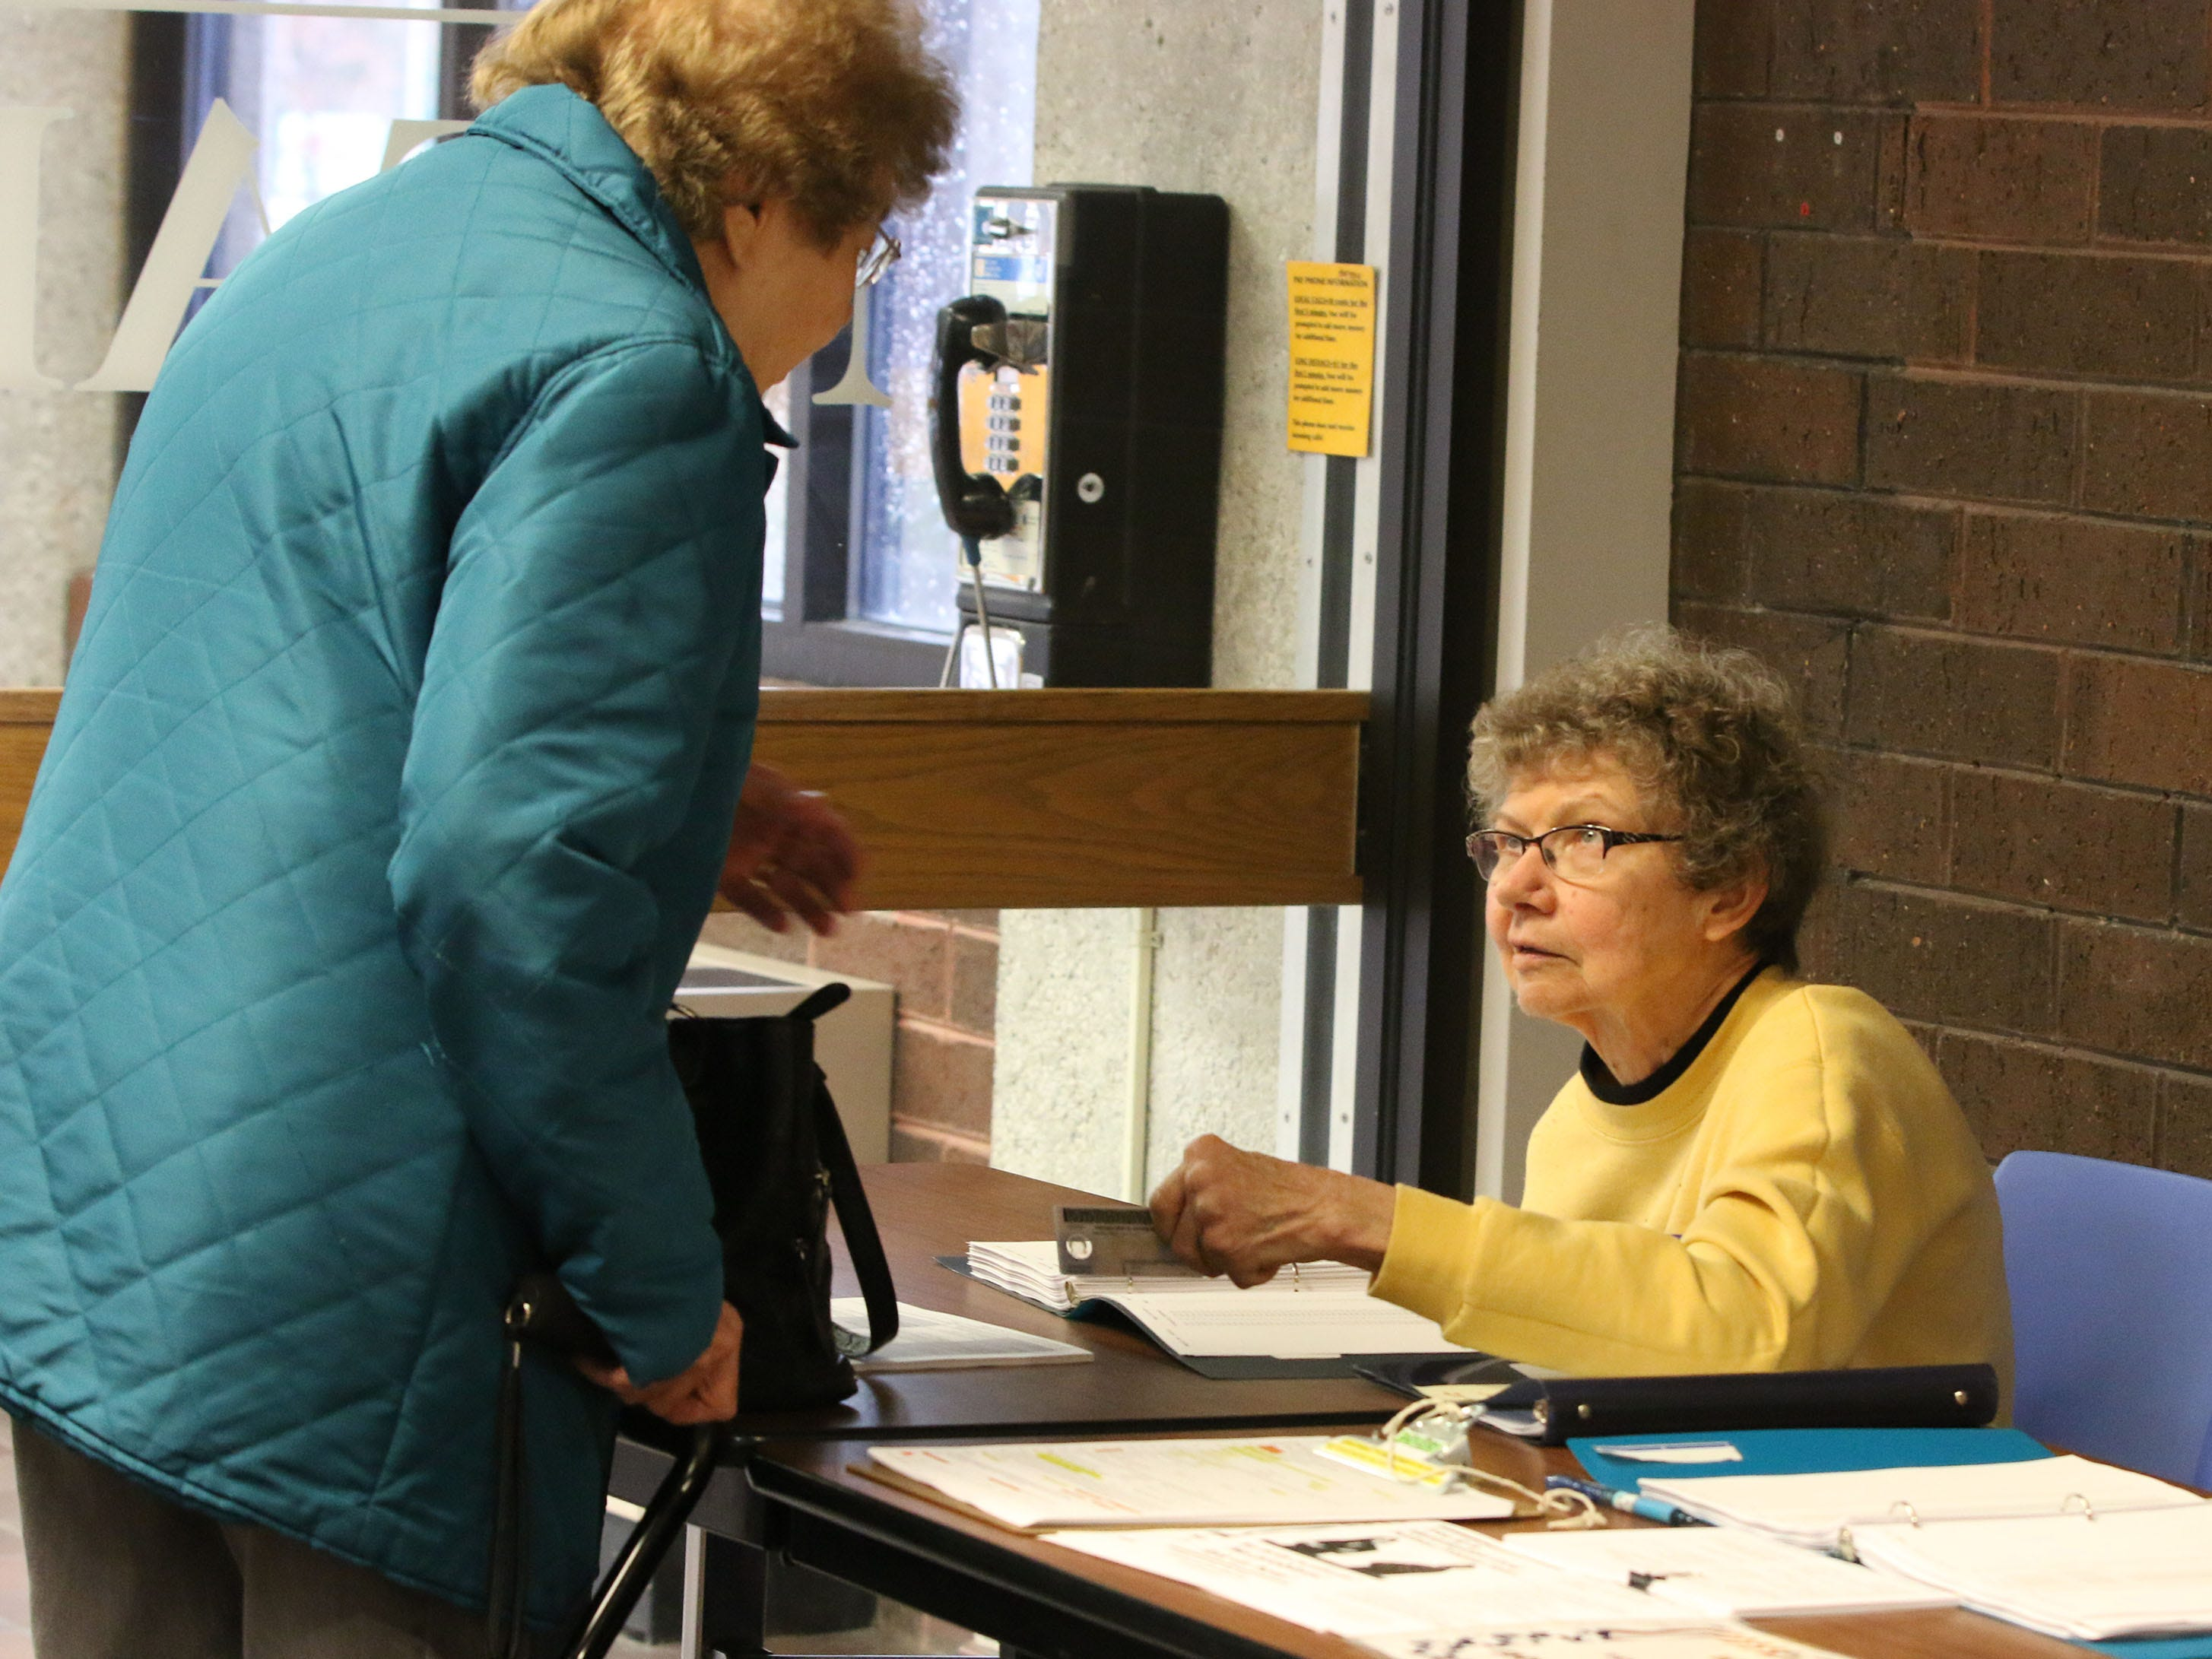 Poll worker Sue Wisse, assists a voter at Mead Public Library polling place, Tuesday, November 6, 2018, in Sheboygan, Wis.